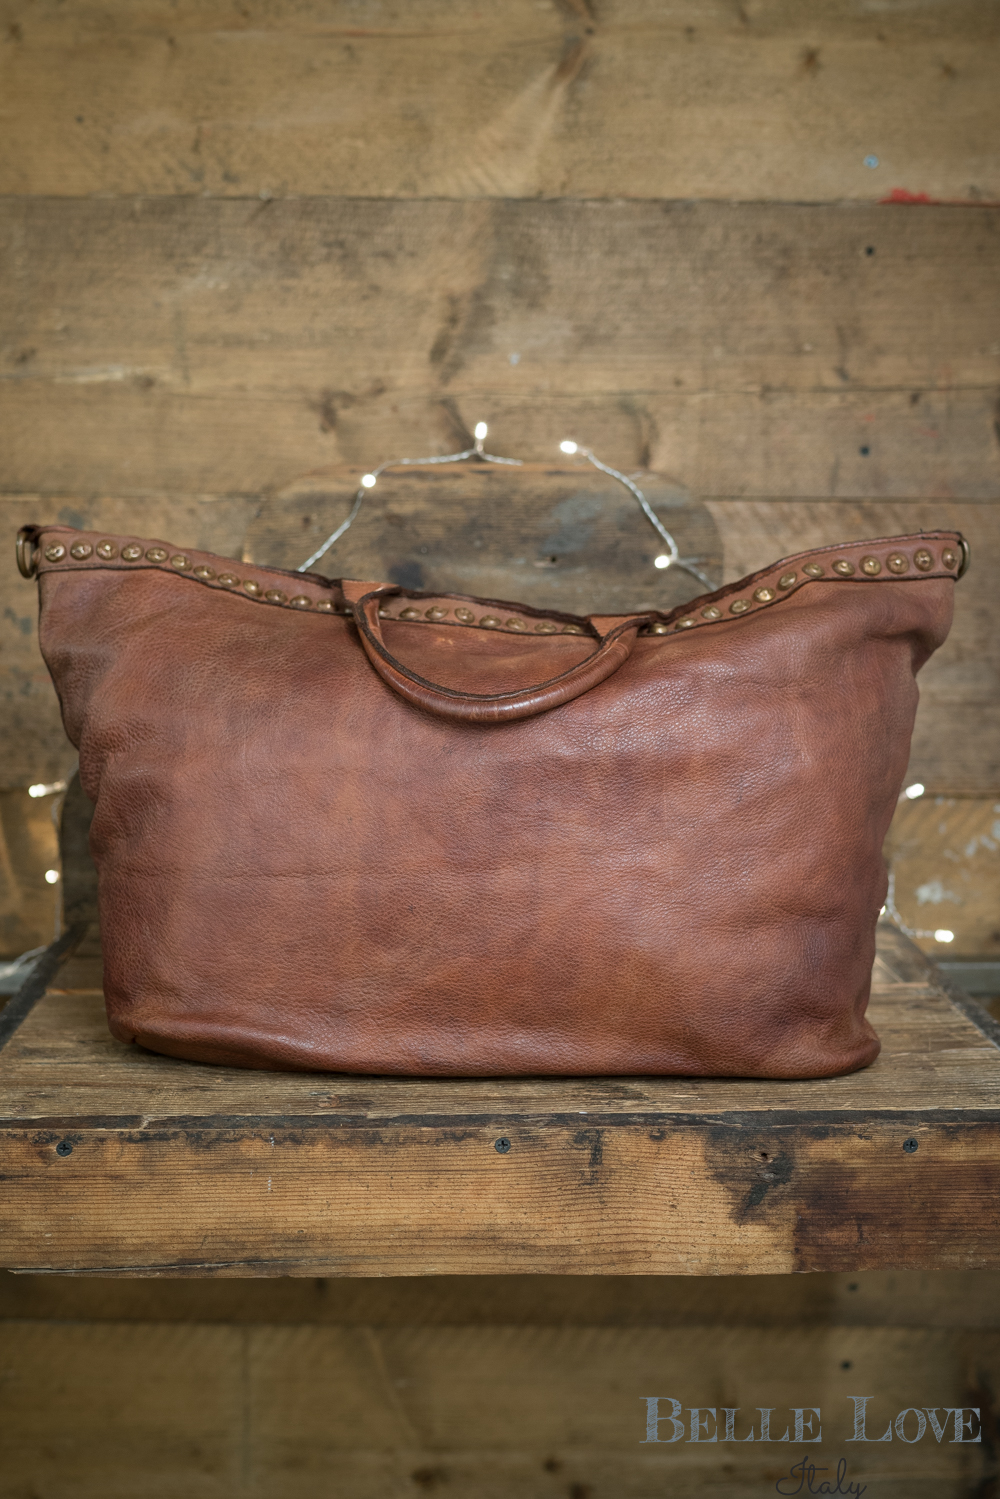 Belle Love Italy Tanned Leather Tote Bag